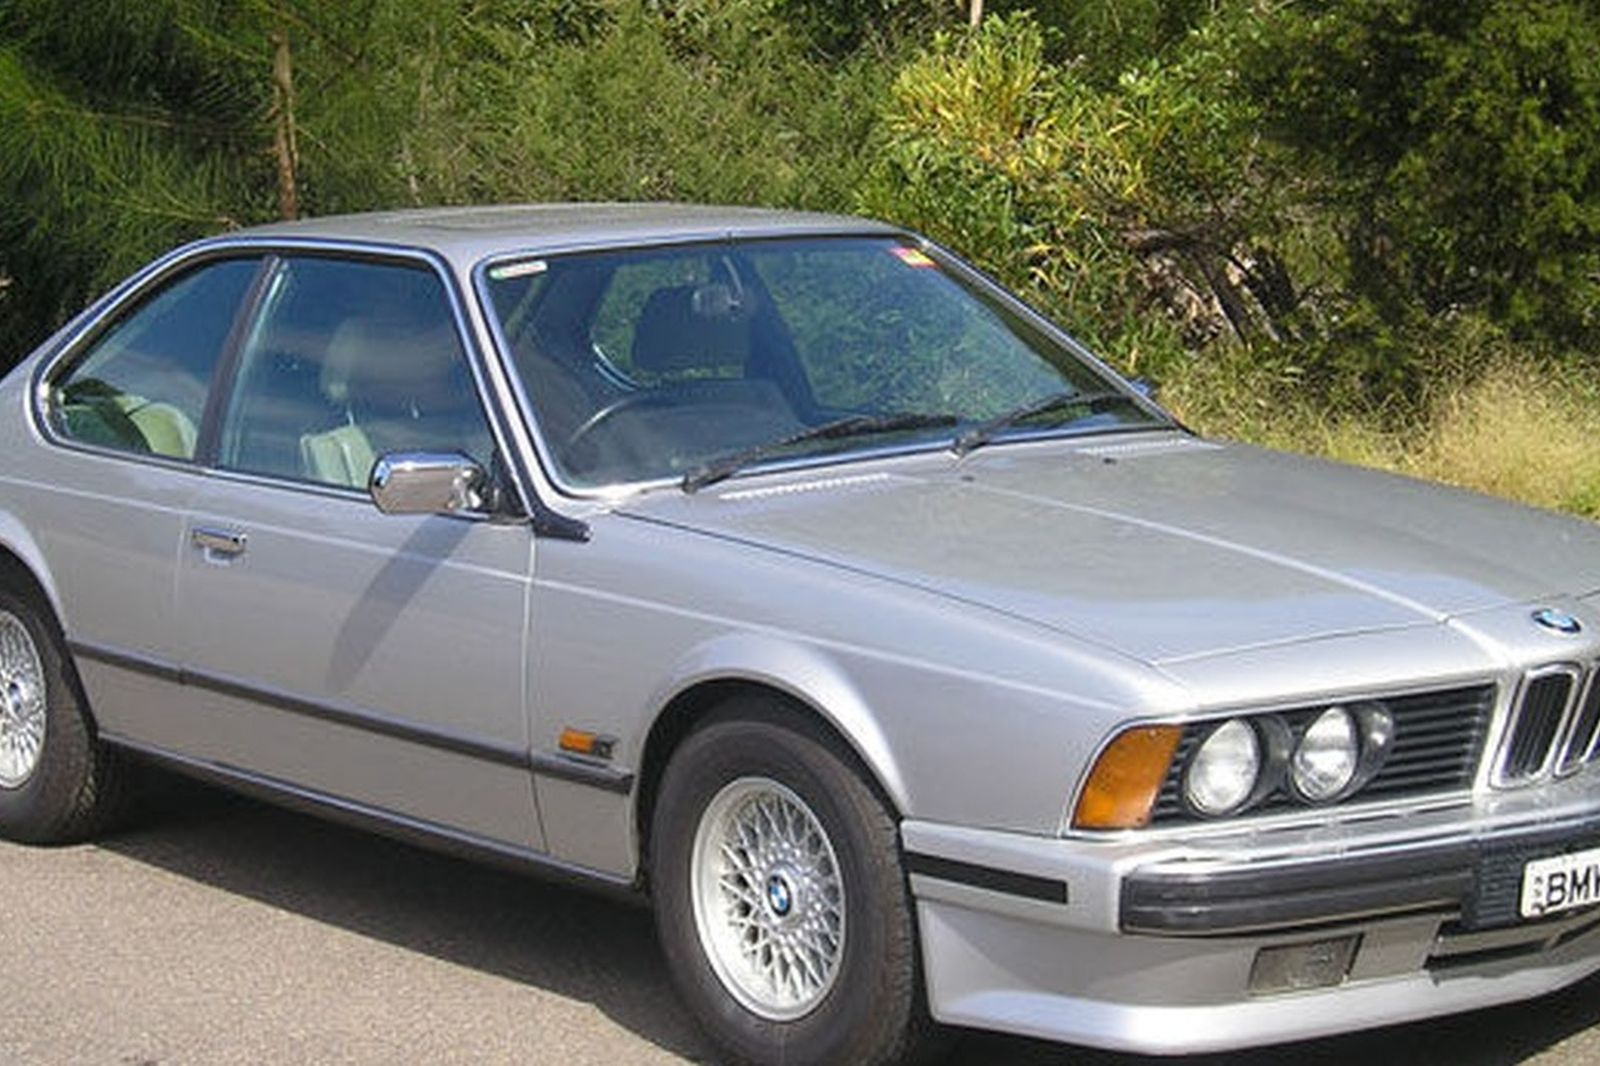 1983 bmw 635 csi coupe sold bmw 635 csi coupe auctions lot 26 shannons E24 633CSi at readyjetset.co